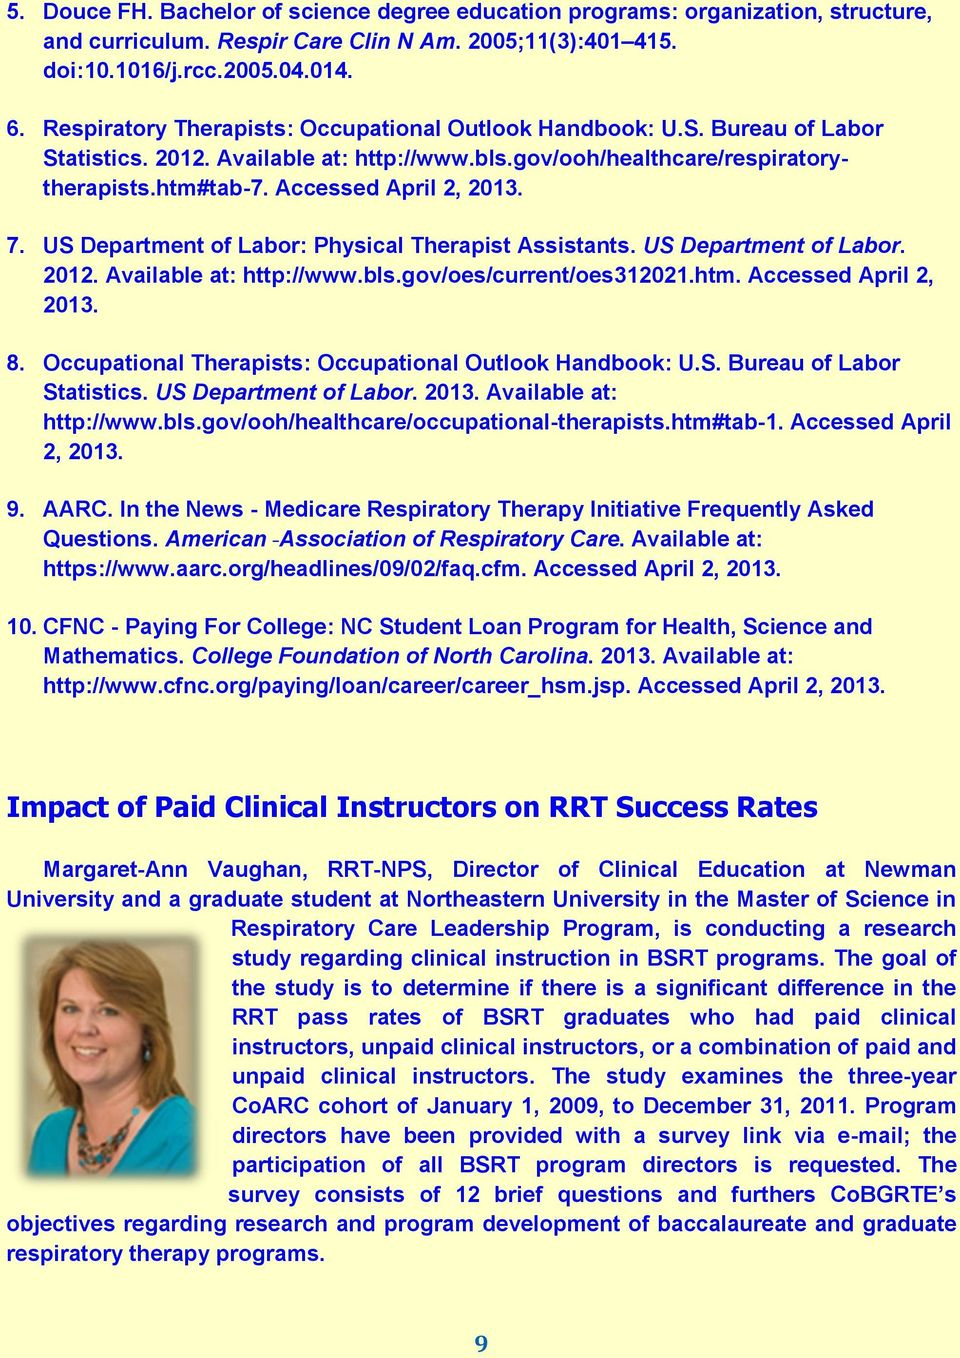 7. US Department of Labor: Physical Therapist Assistants. US Department of Labor. 2012. Available at: http://www.bls.gov/oes/current/oes312021.htm. Accessed April 2, 2013. 8.